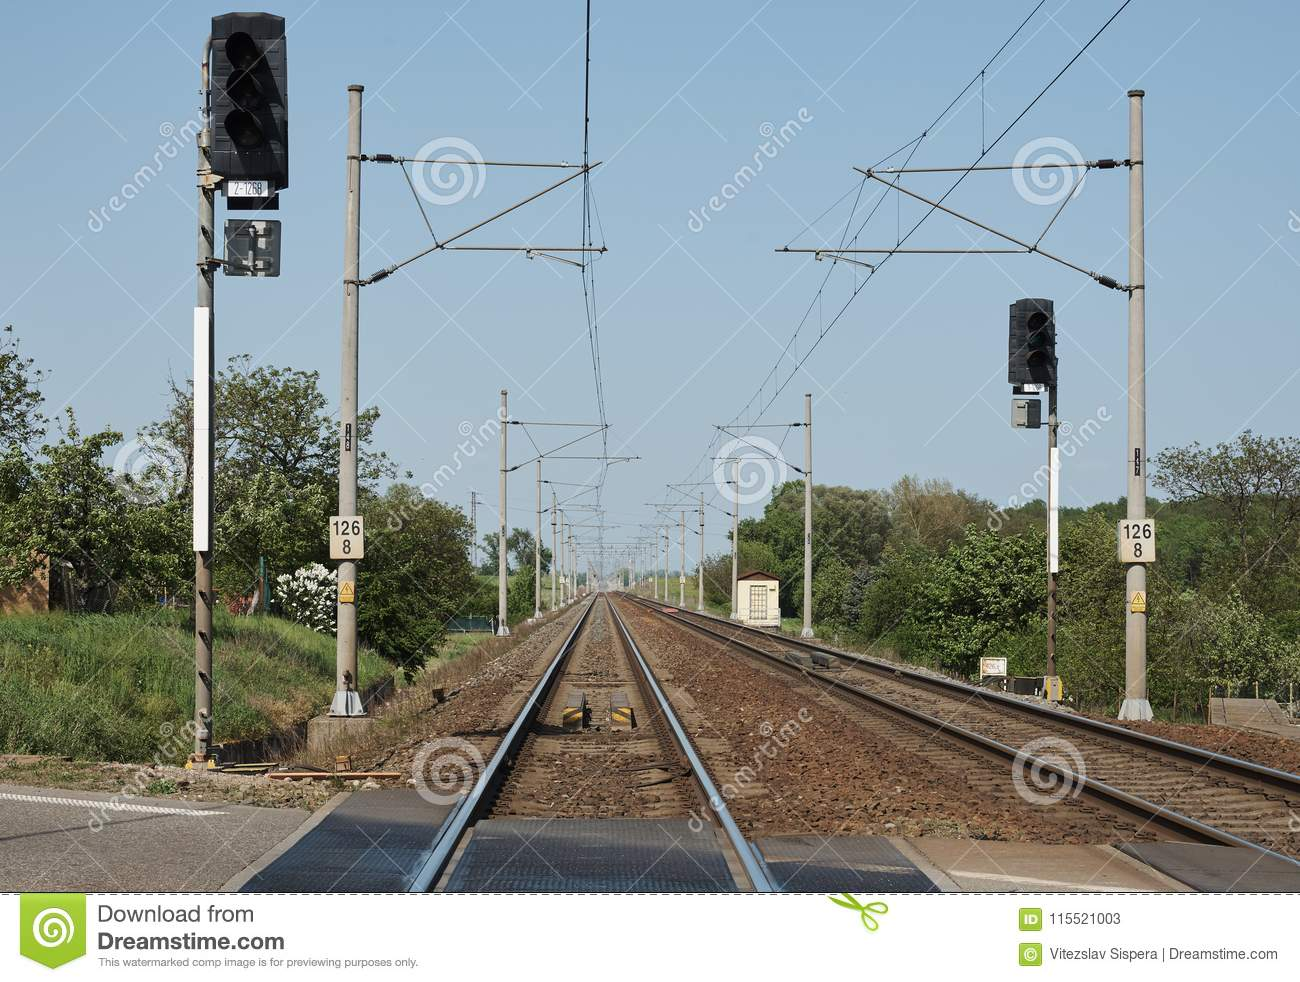 Swell Train Tracks With Columns Electric Wires And Traffic Lights In Wiring Digital Resources Anistprontobusorg